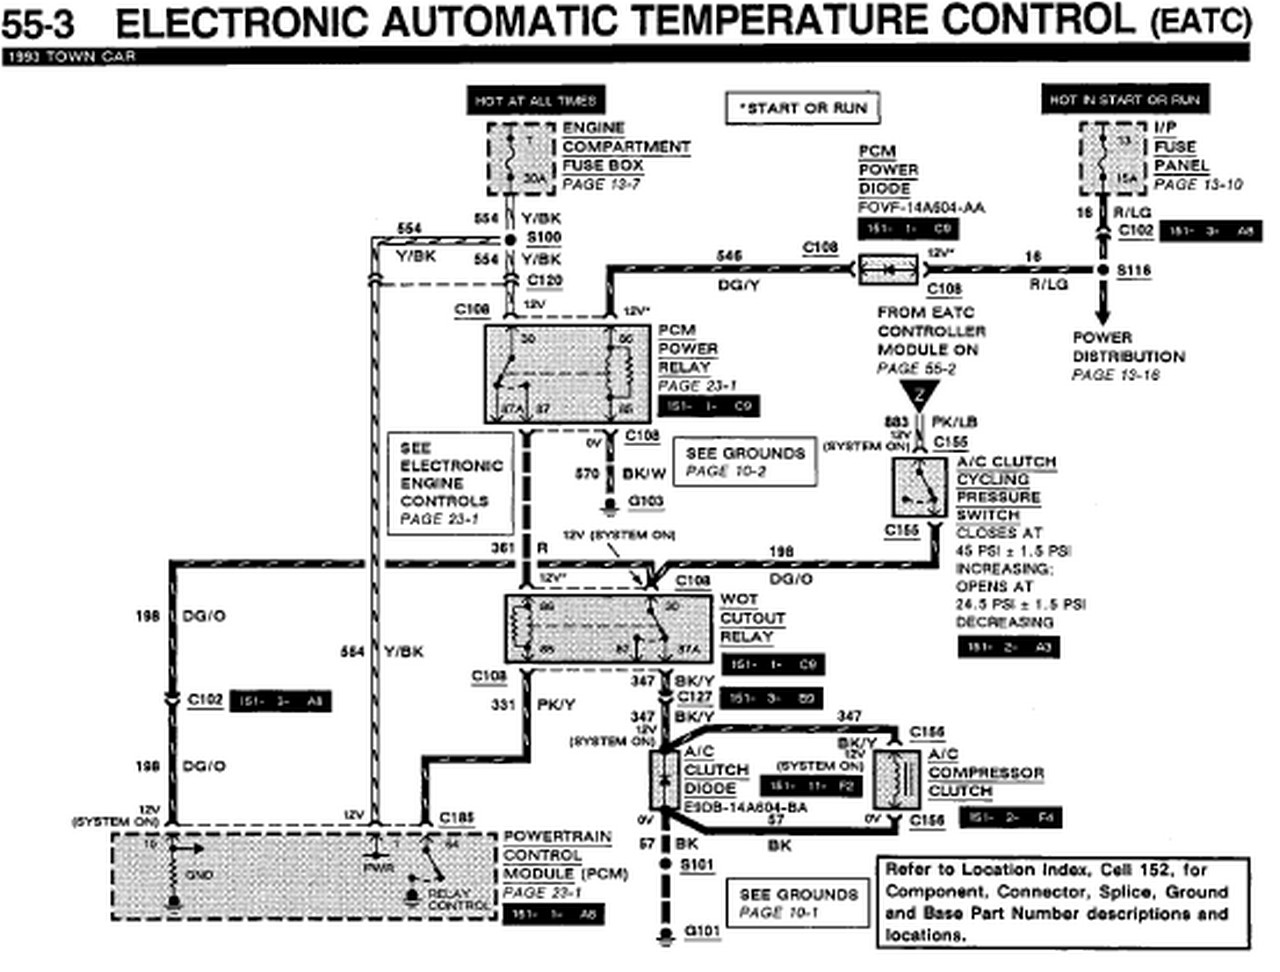 lincon town car wiring diagram 1993 lincoln town car eatc wiring diagram | auto wiring diagrams 2008 lincoln town car wiring diagram